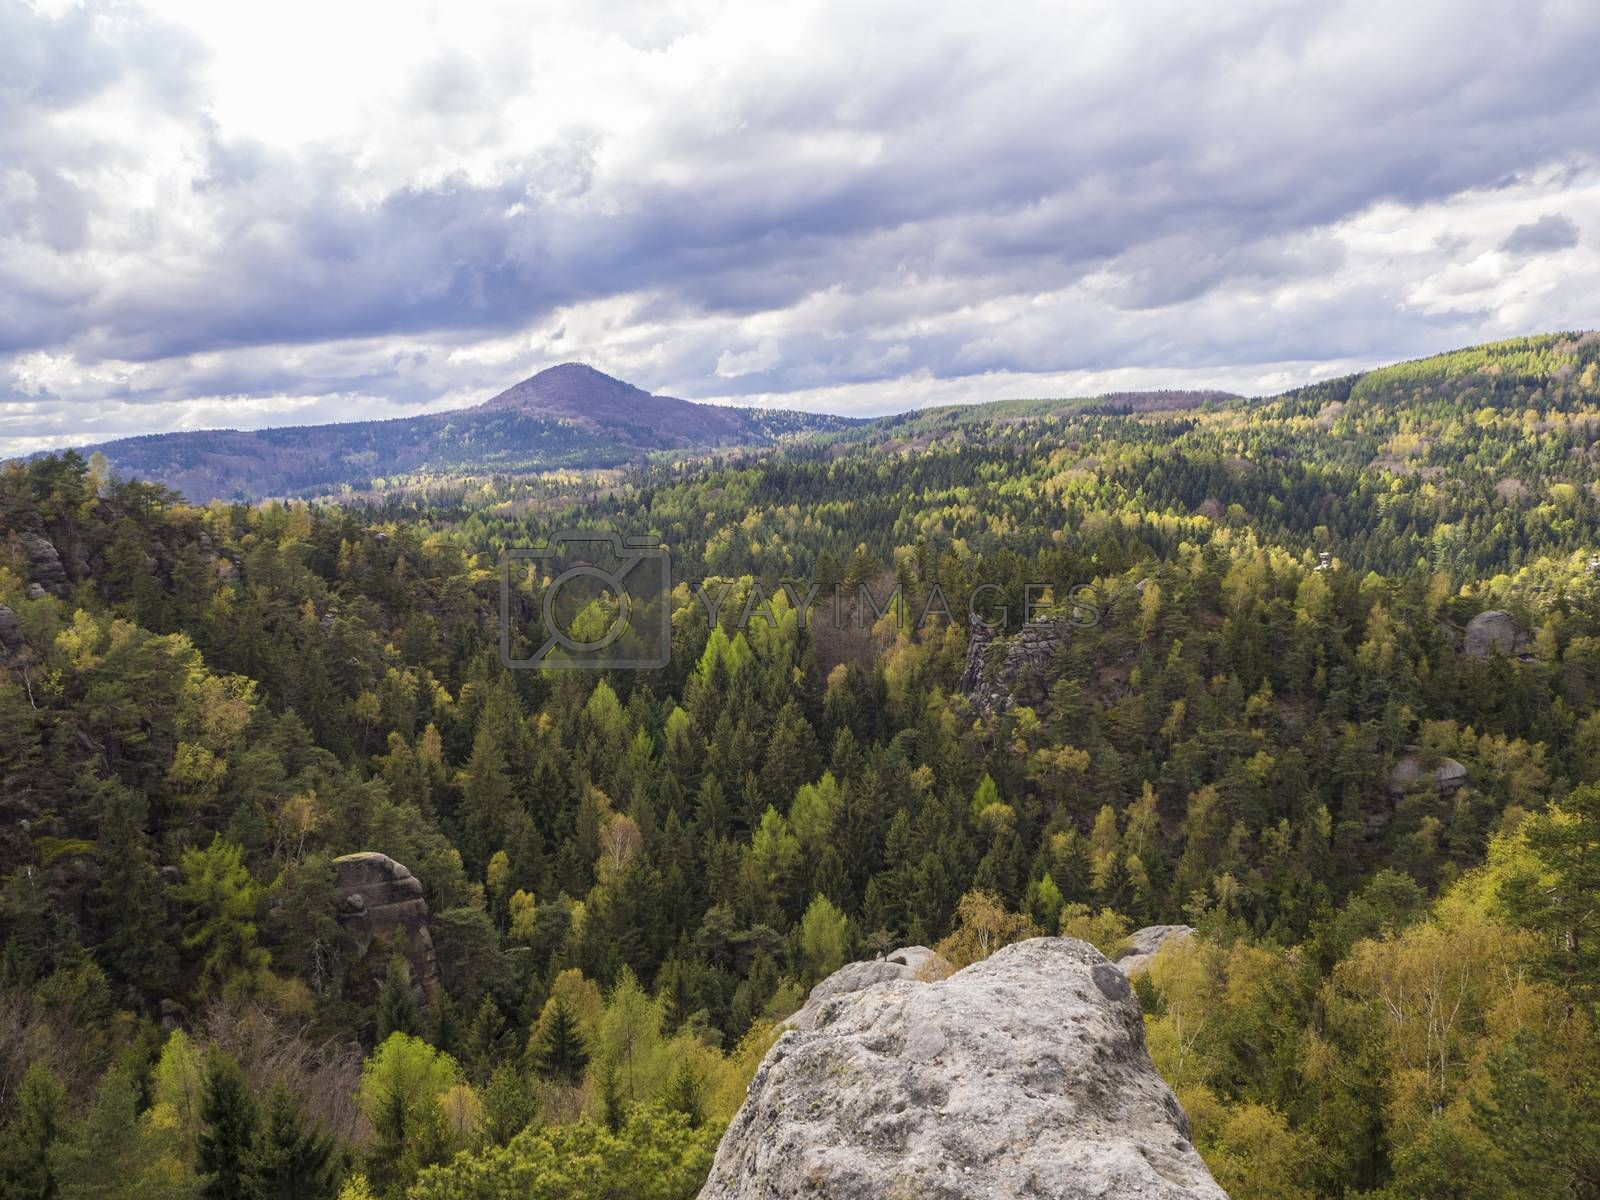 view from sandstone pillar on Luzicke hory mountain panorama with dramatic clouds and forests